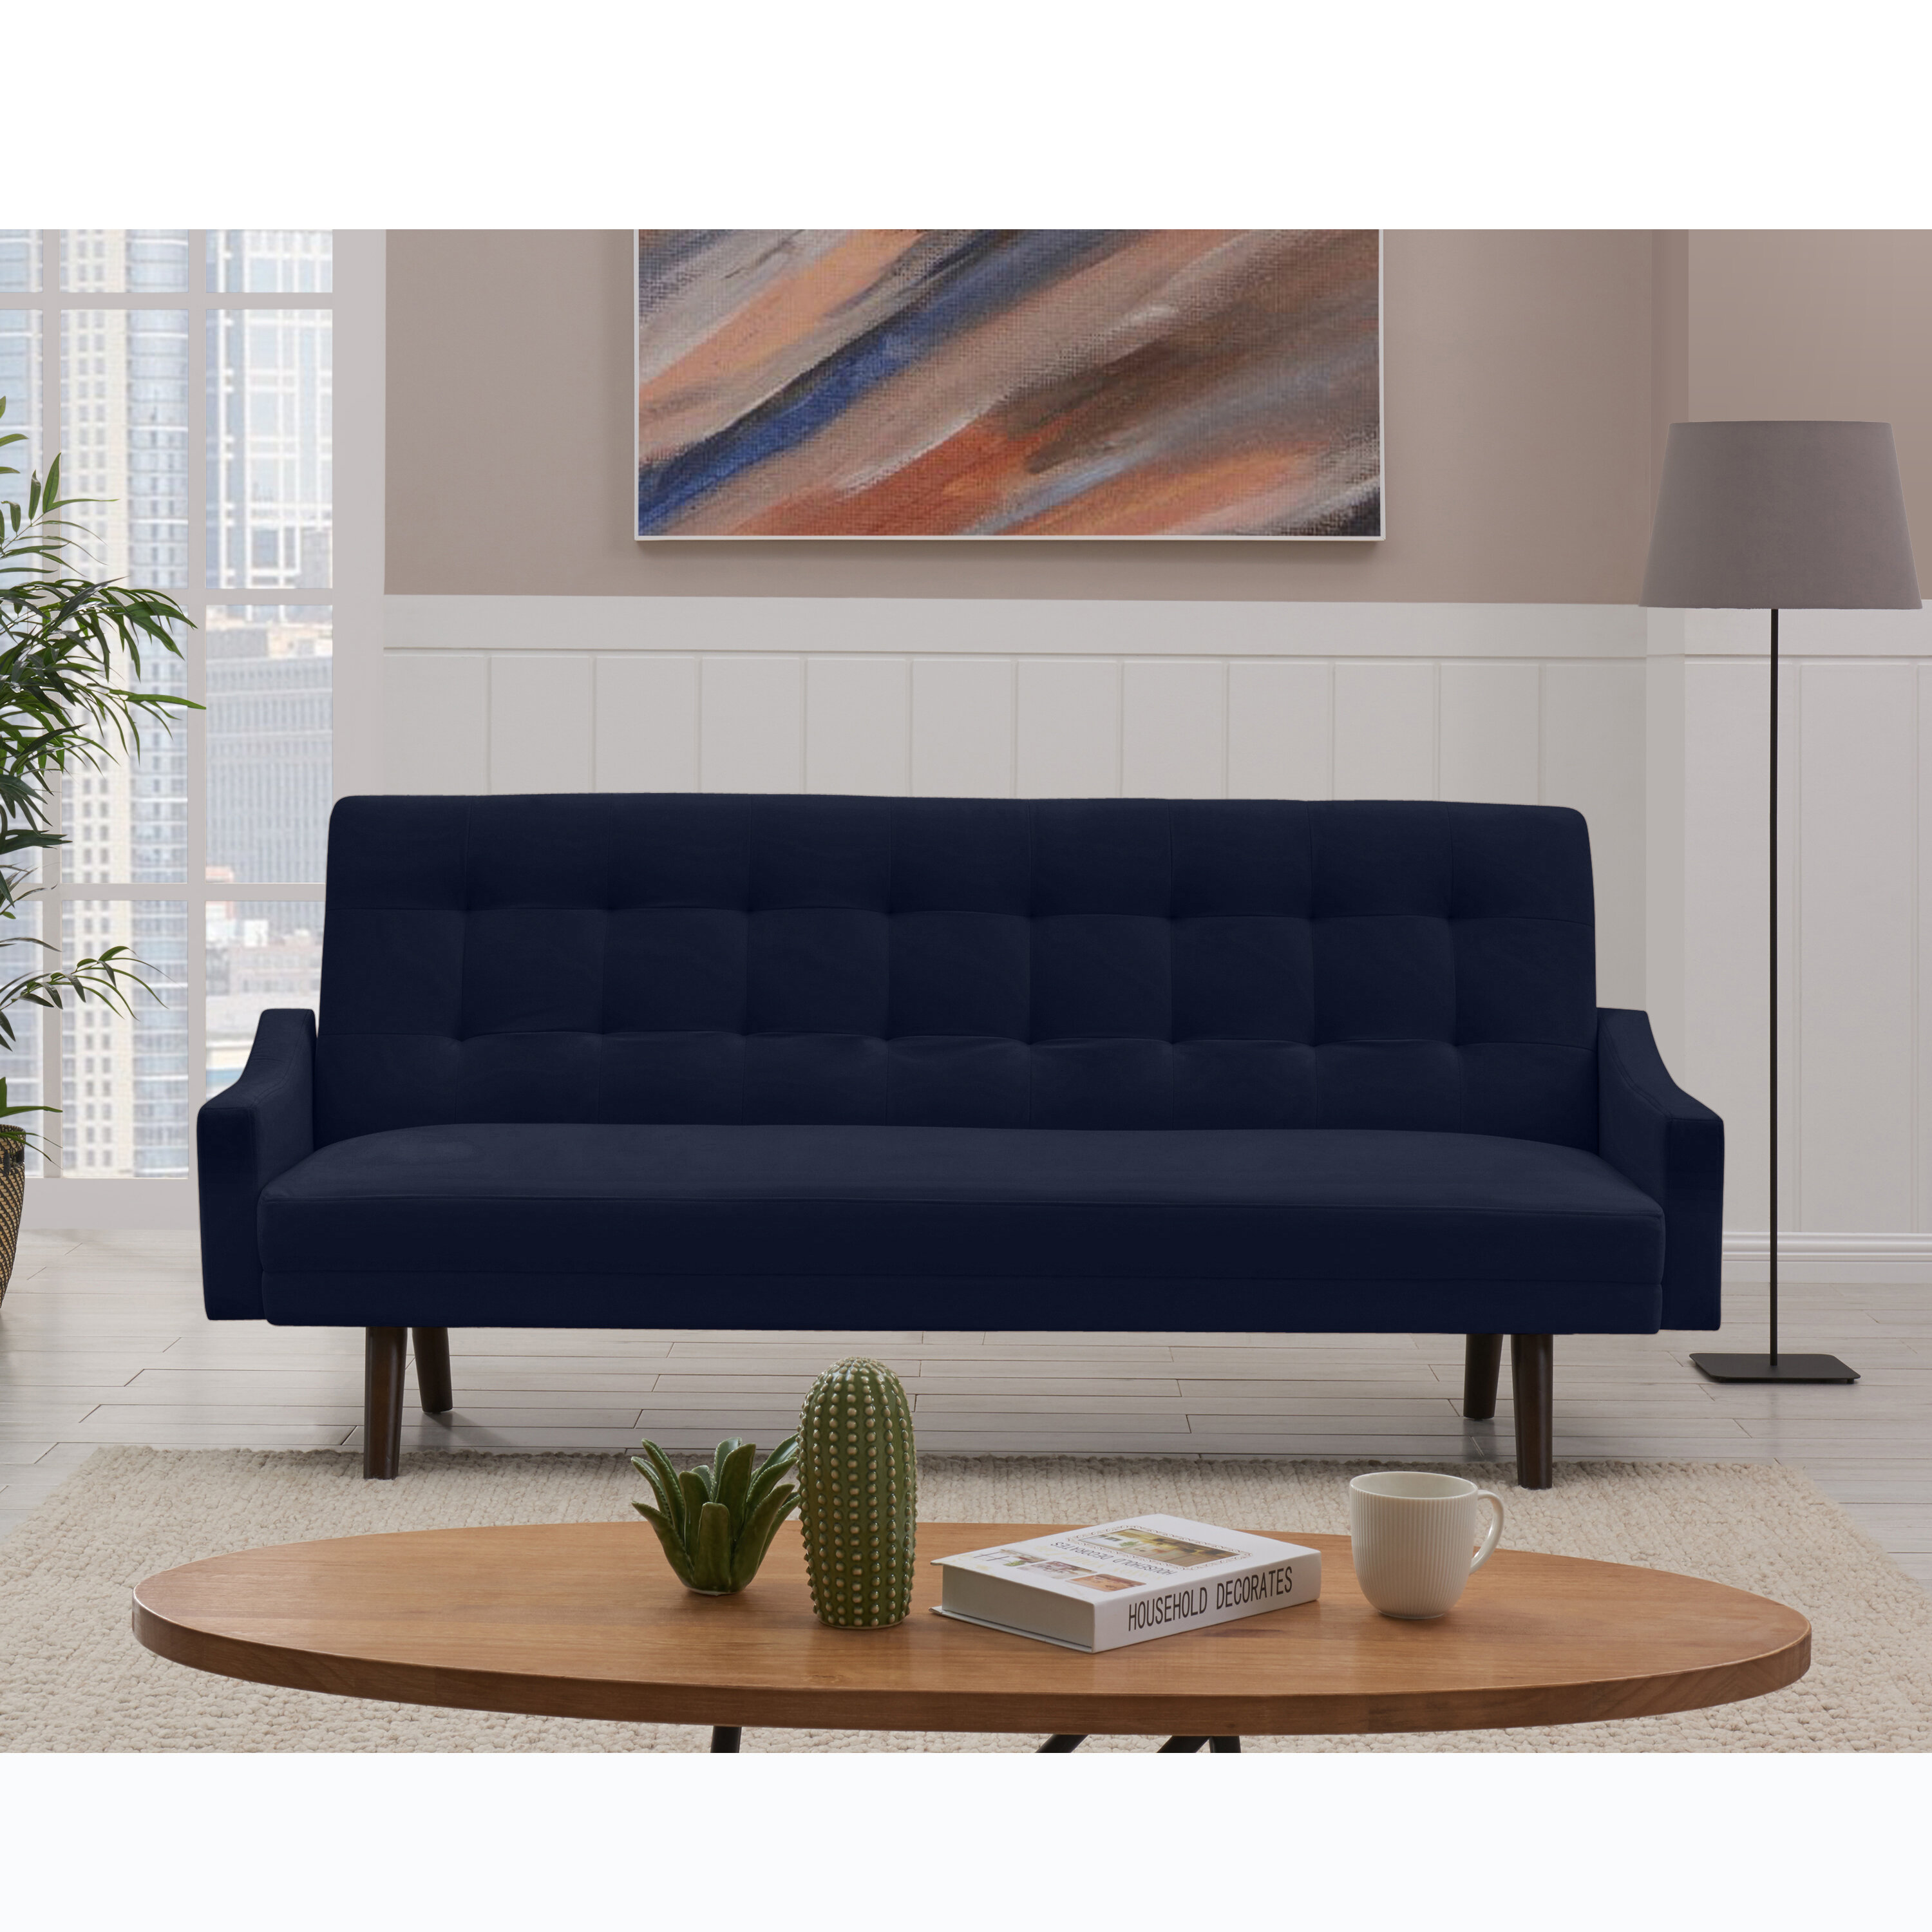 Remarkable Westbrooks Convertible Sofa Bed Download Free Architecture Designs Grimeyleaguecom